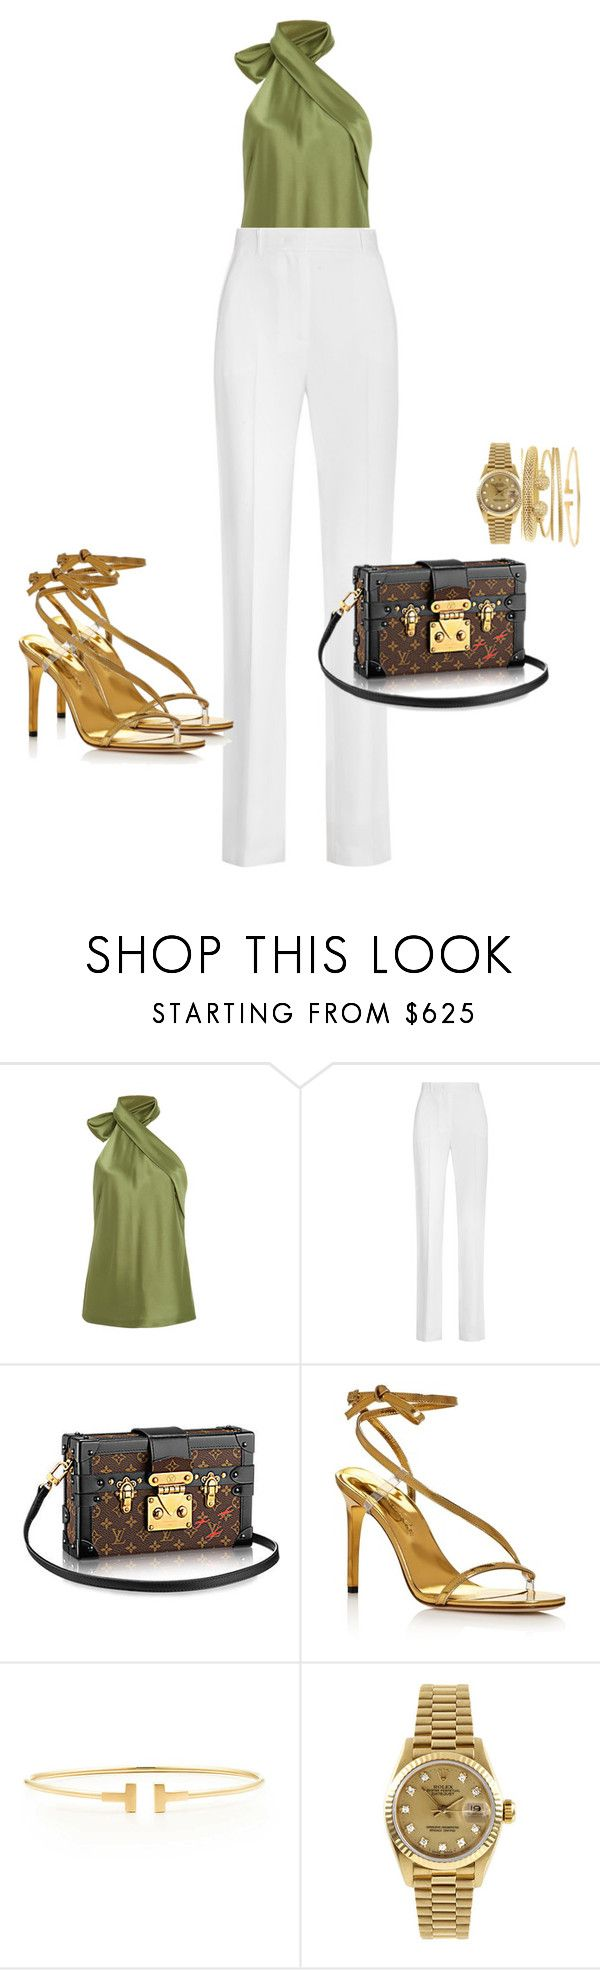 """Satin..."" by styledbyphyllis ❤ liked on Polyvore featuring Galvan, Givenchy, Oscar de la Renta, Tiffany & Co. and Rolex"